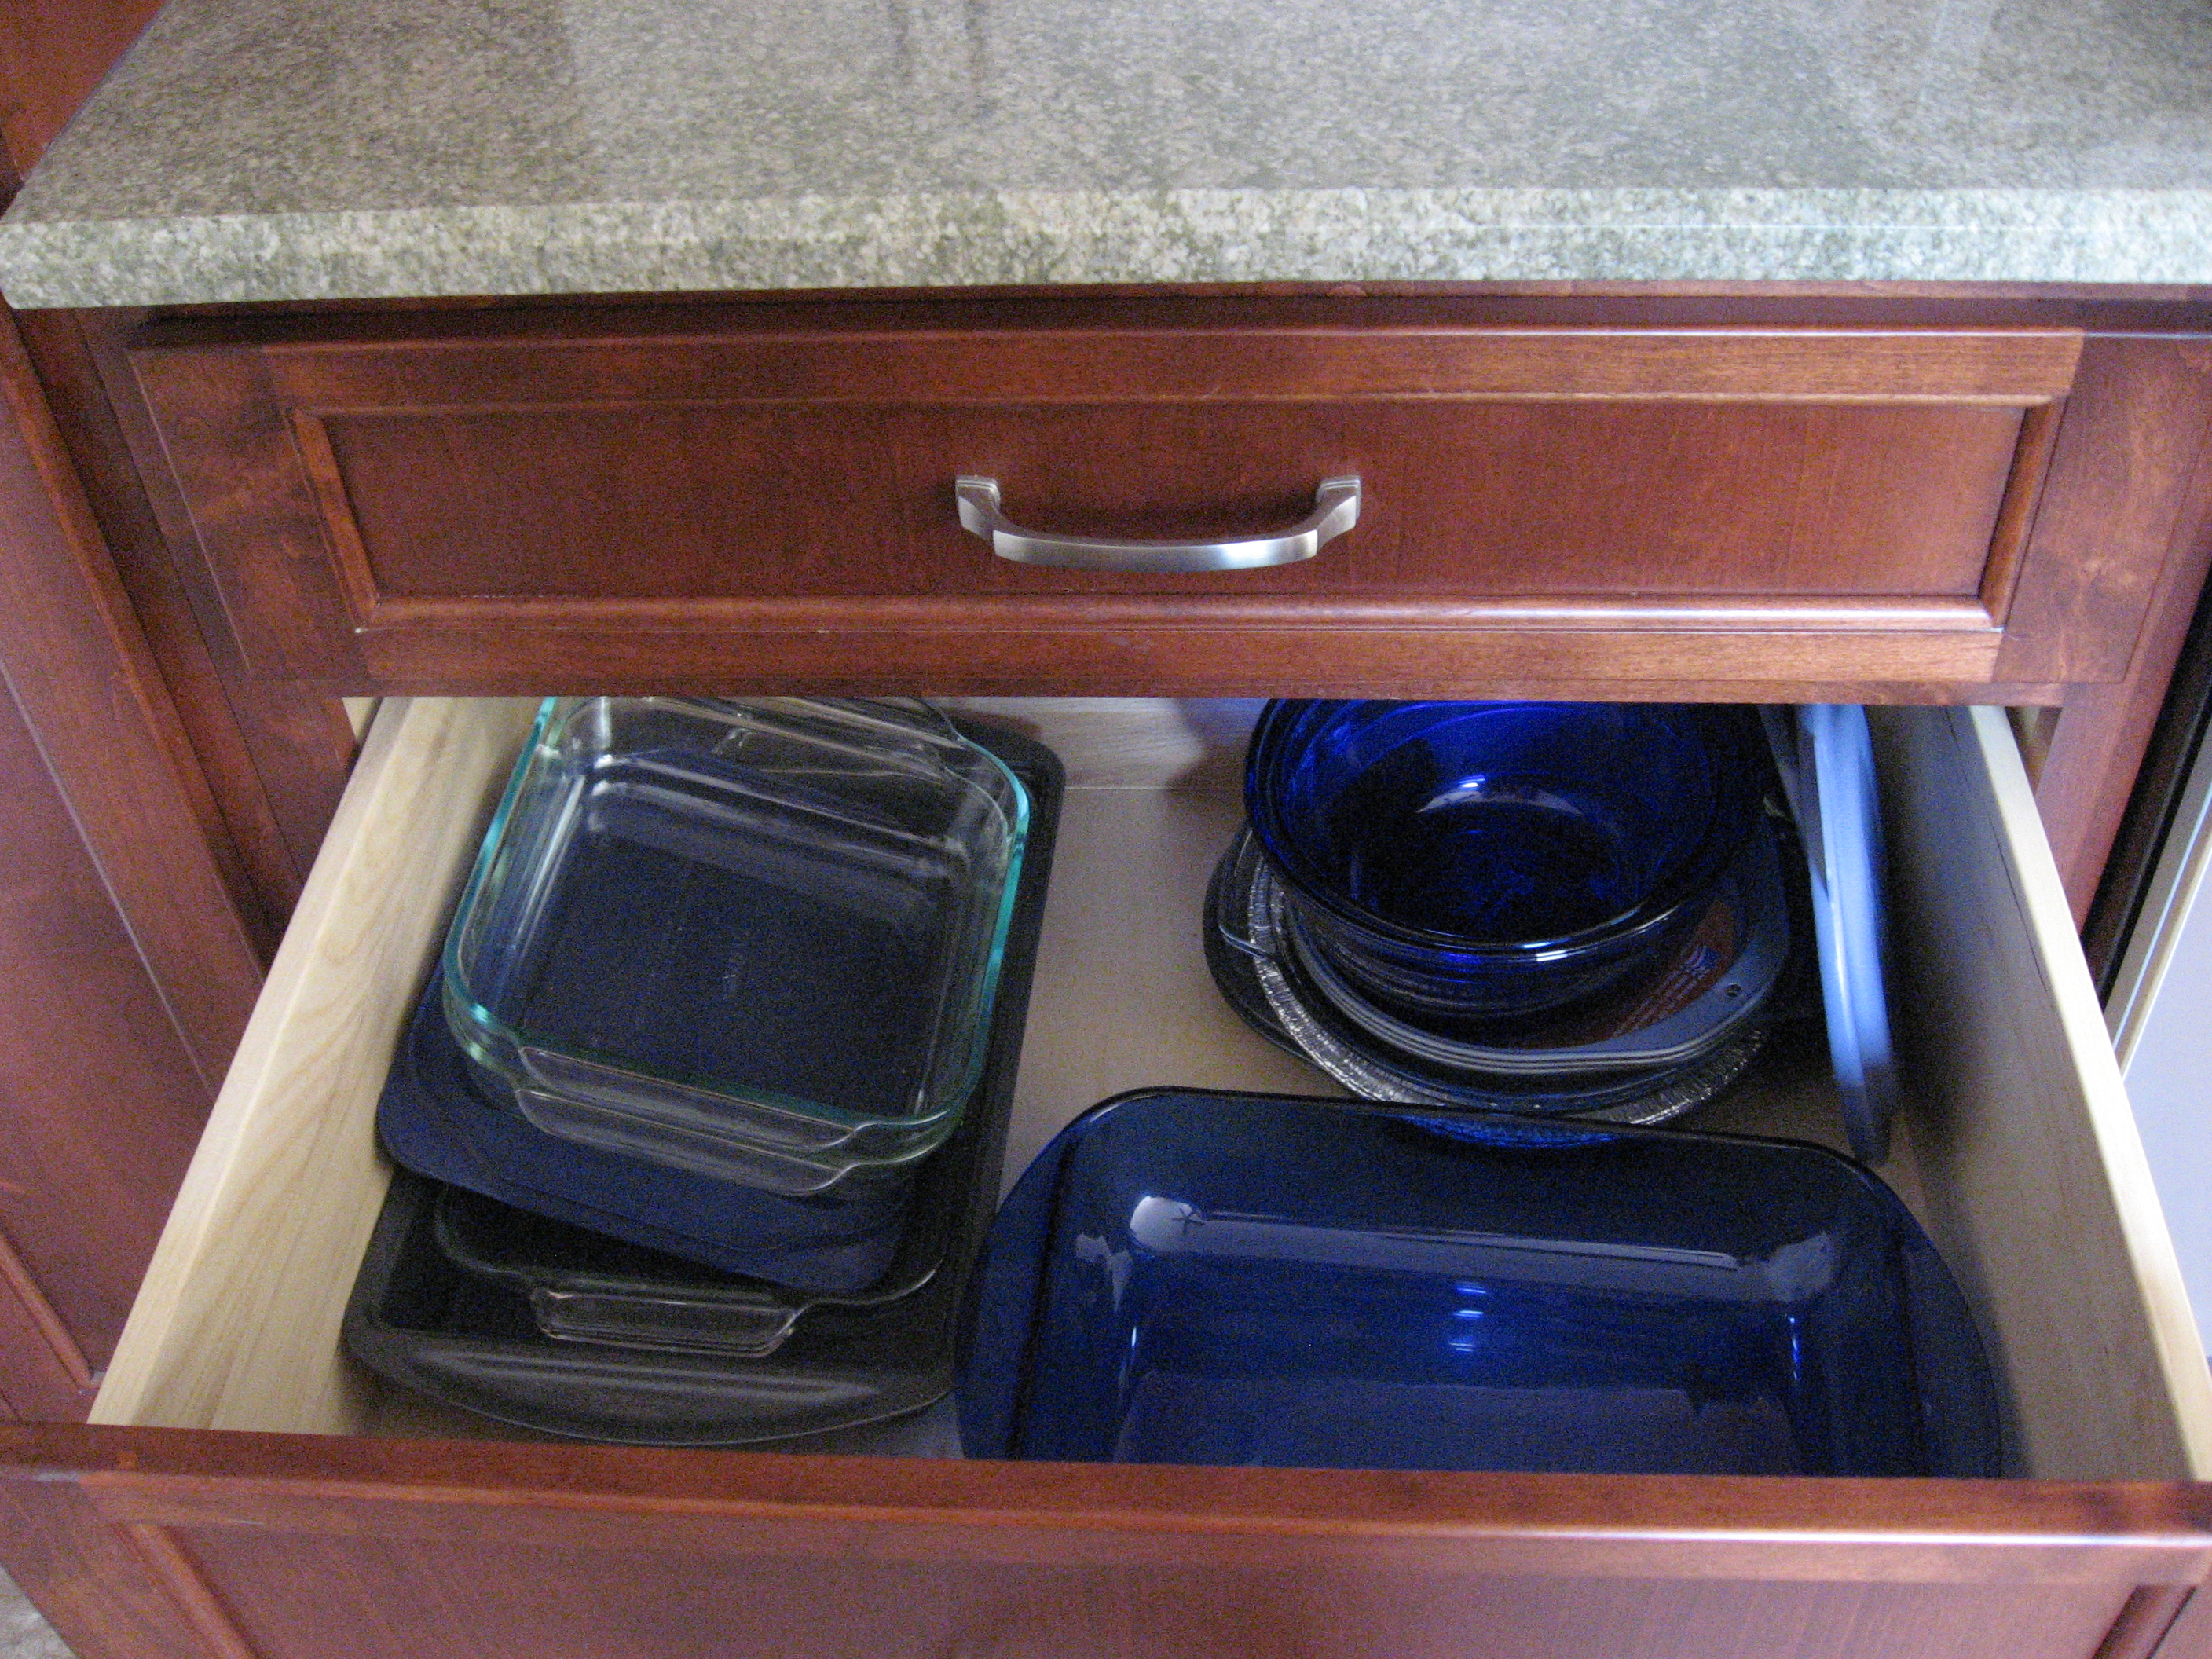 Kitchen Drawer Bakeware Organization